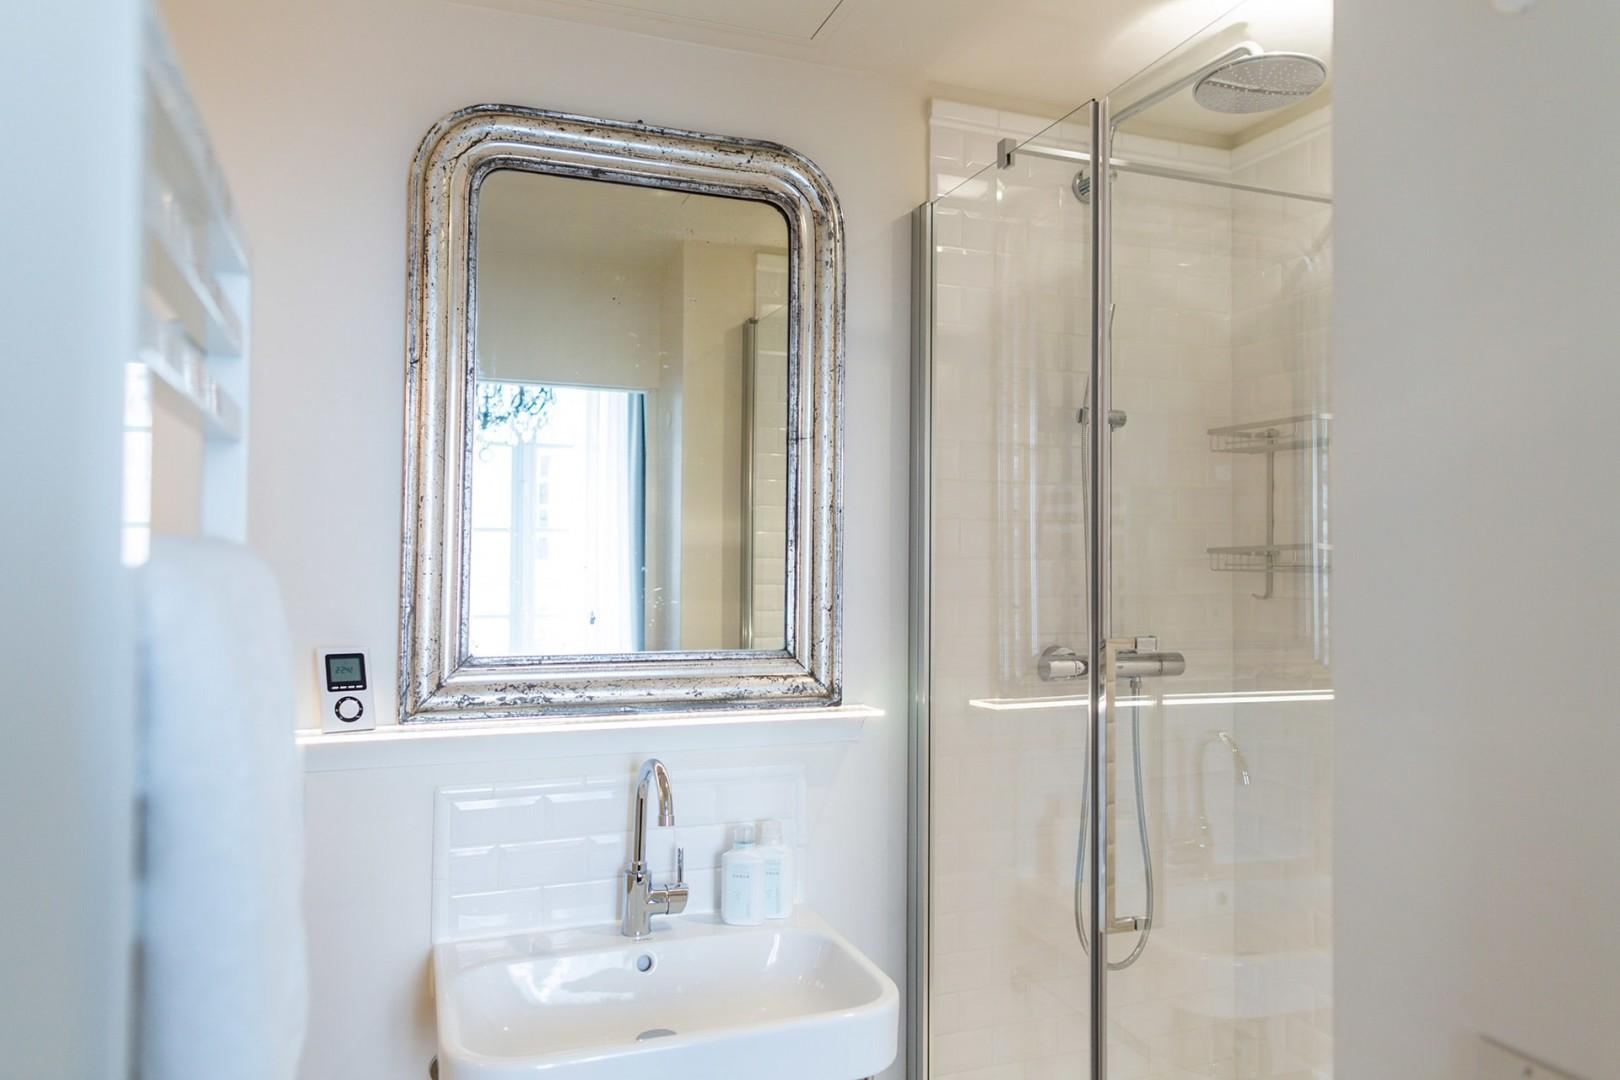 The modern en suite bathroom has a shower, toilet and sink.